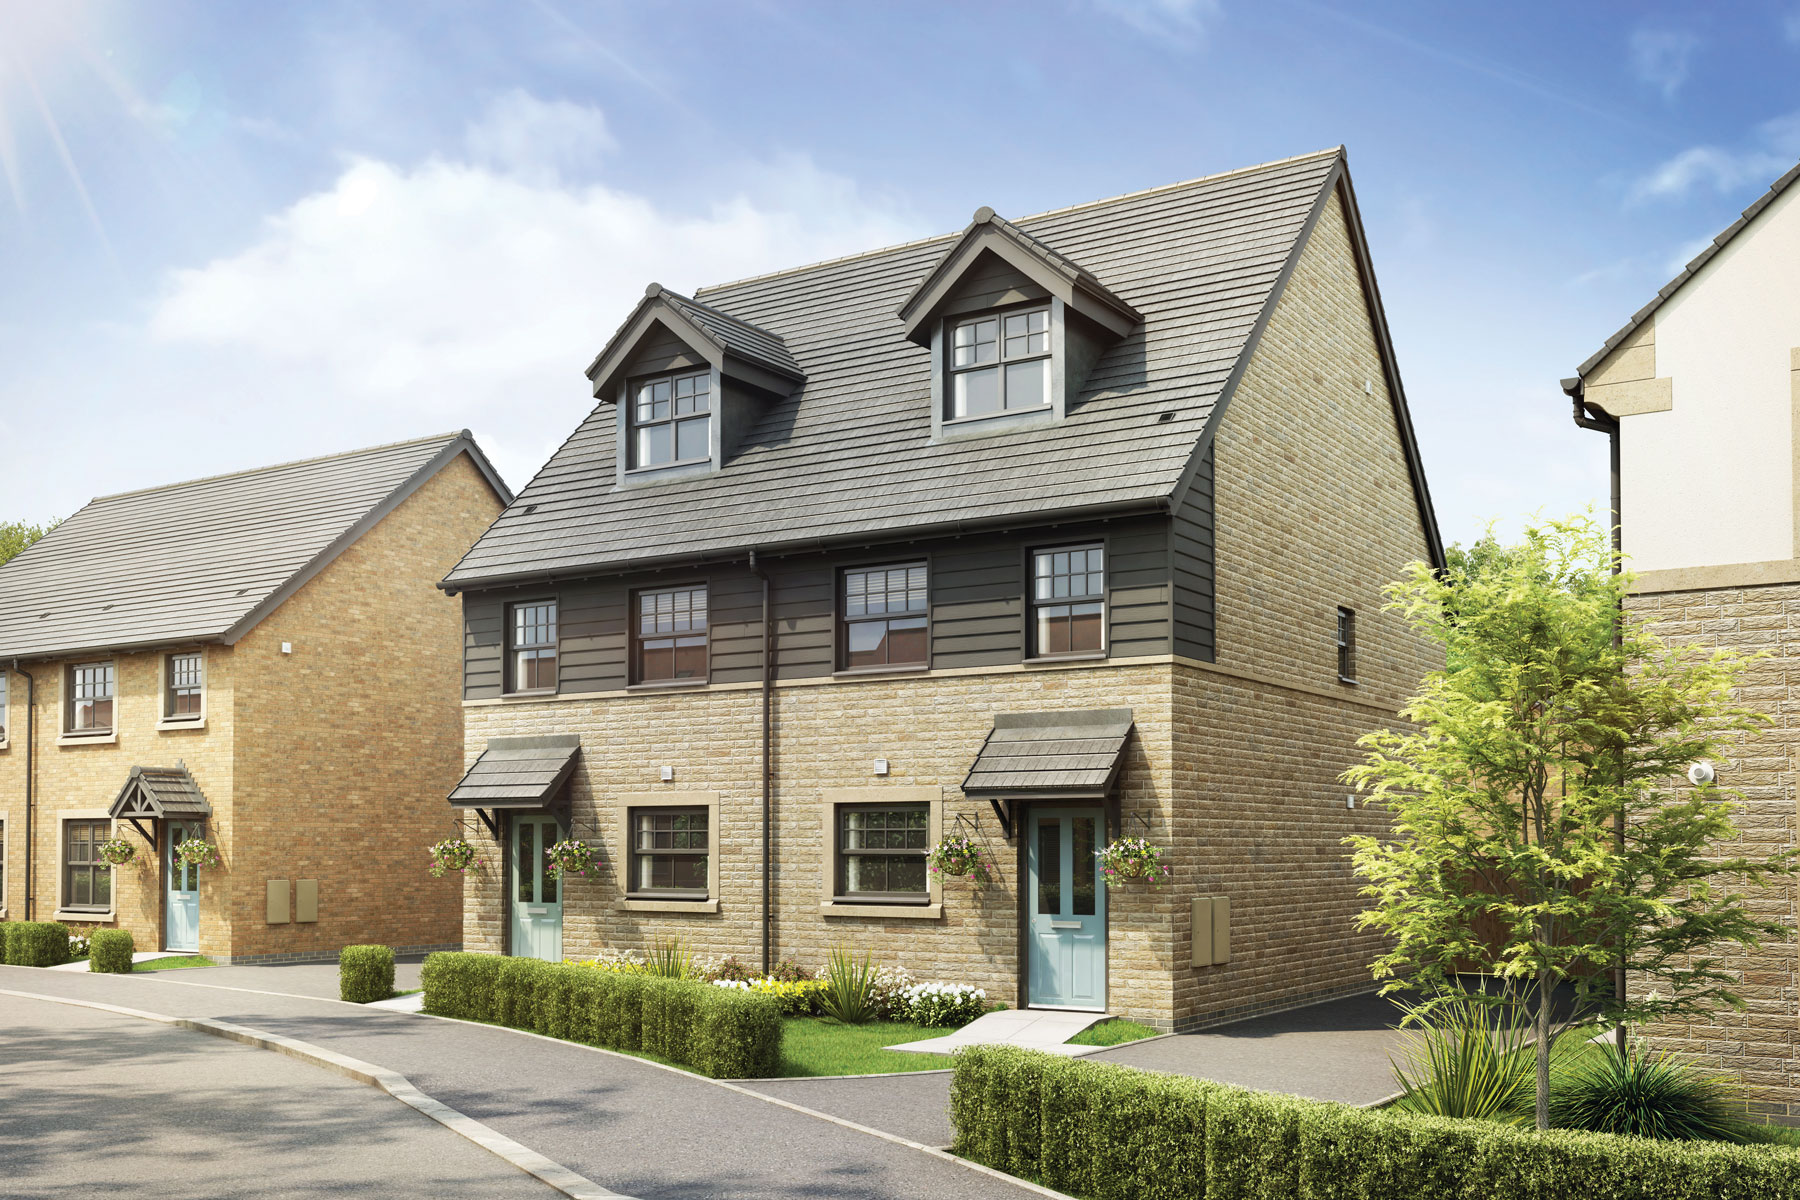 Alton-G-PB35G-The-Village-Street-V1-Plot-208-209